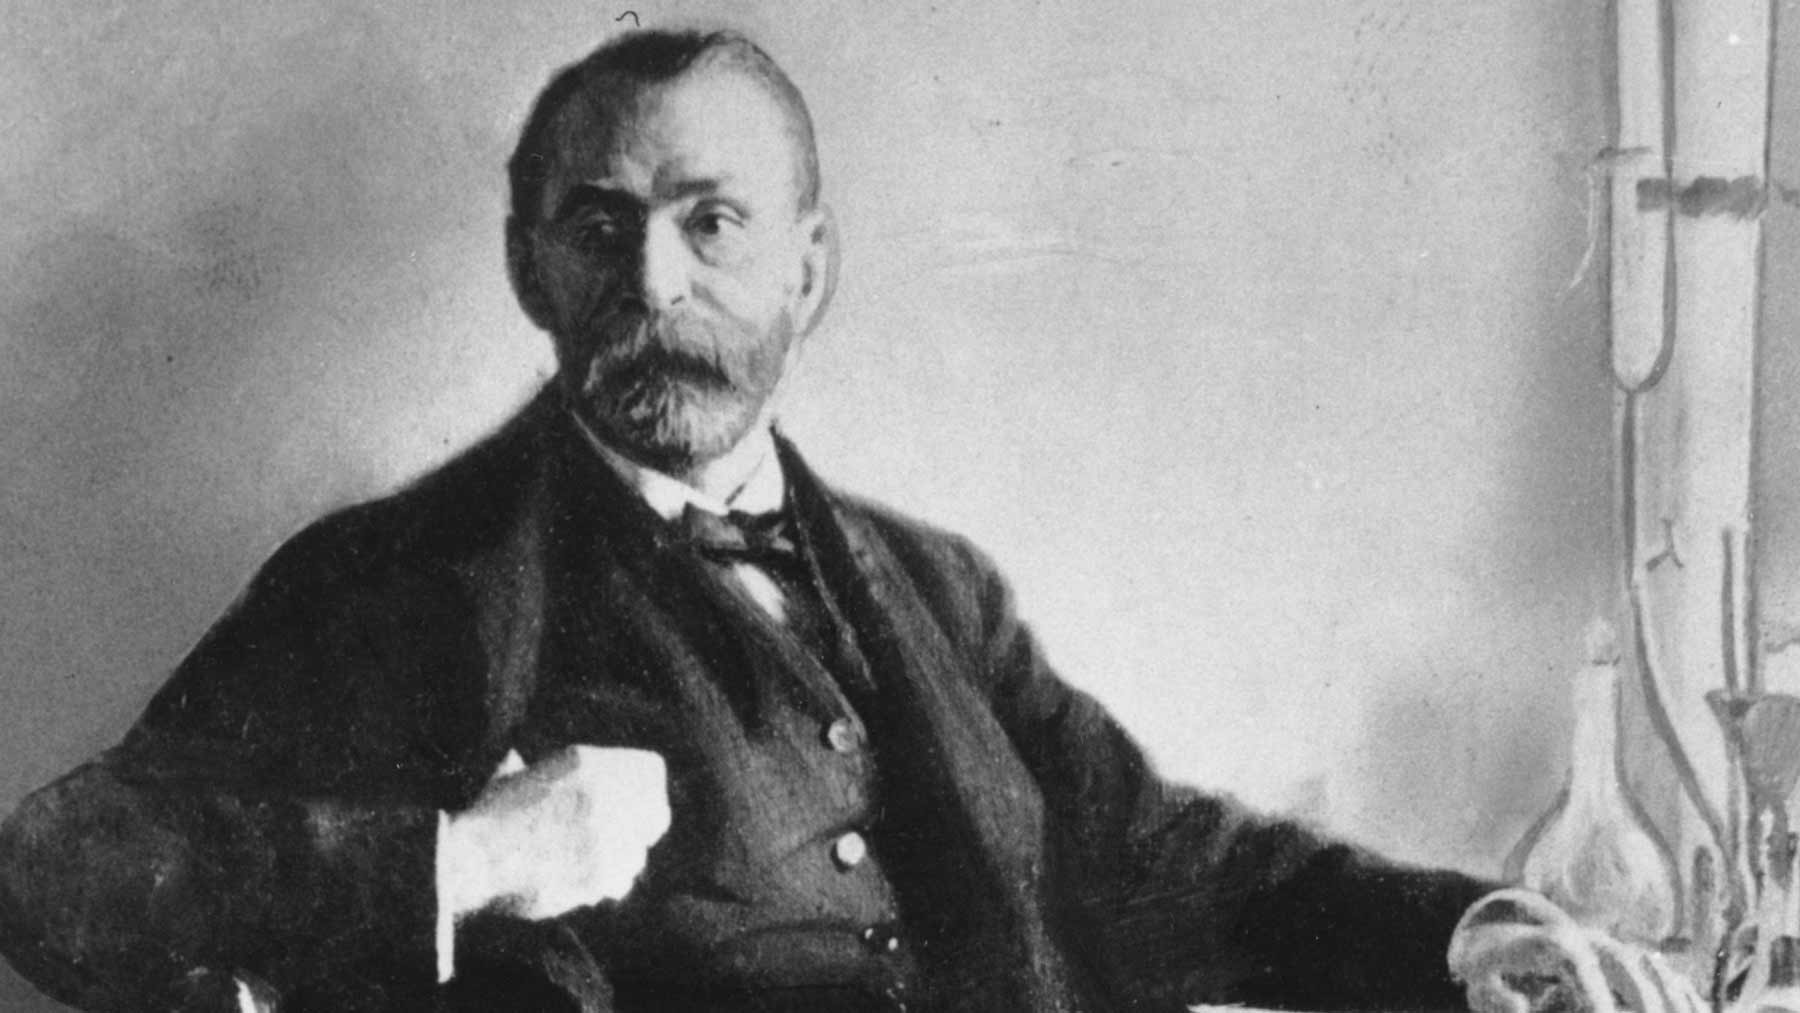 alfred nobel life and career Category: essays research papers title: alfred nobel  factory in the world, but  found it was too volatile to work with, and too many miners were dying using it   throughout his life he had poor health but was not worried about it because he.